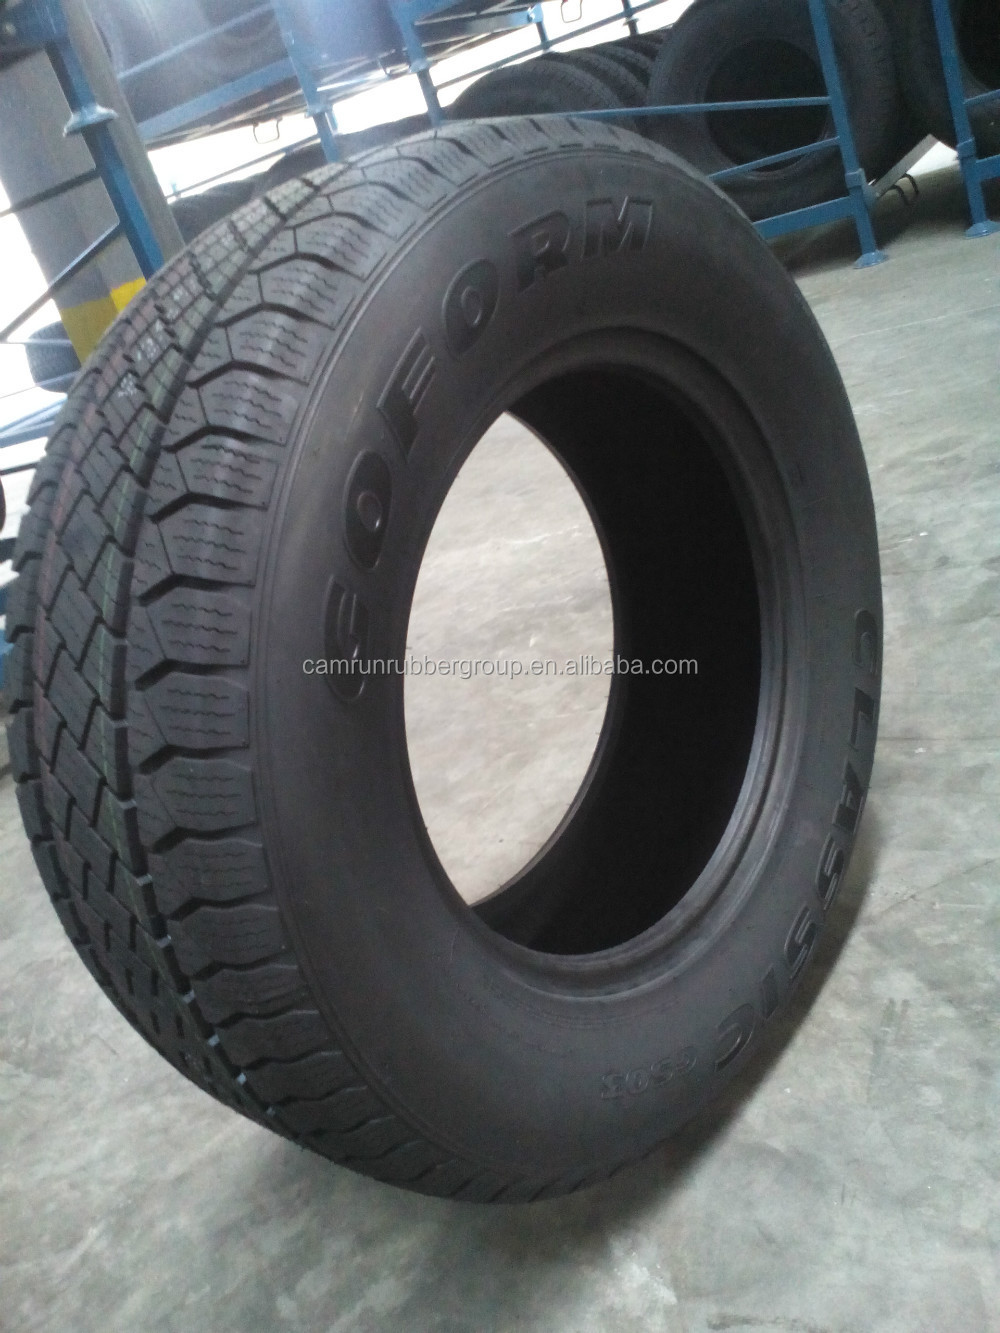 Goform Brand P265/70r16 P 265/70r16 Radial Suv Tyres Gt02 For 4x4 ...